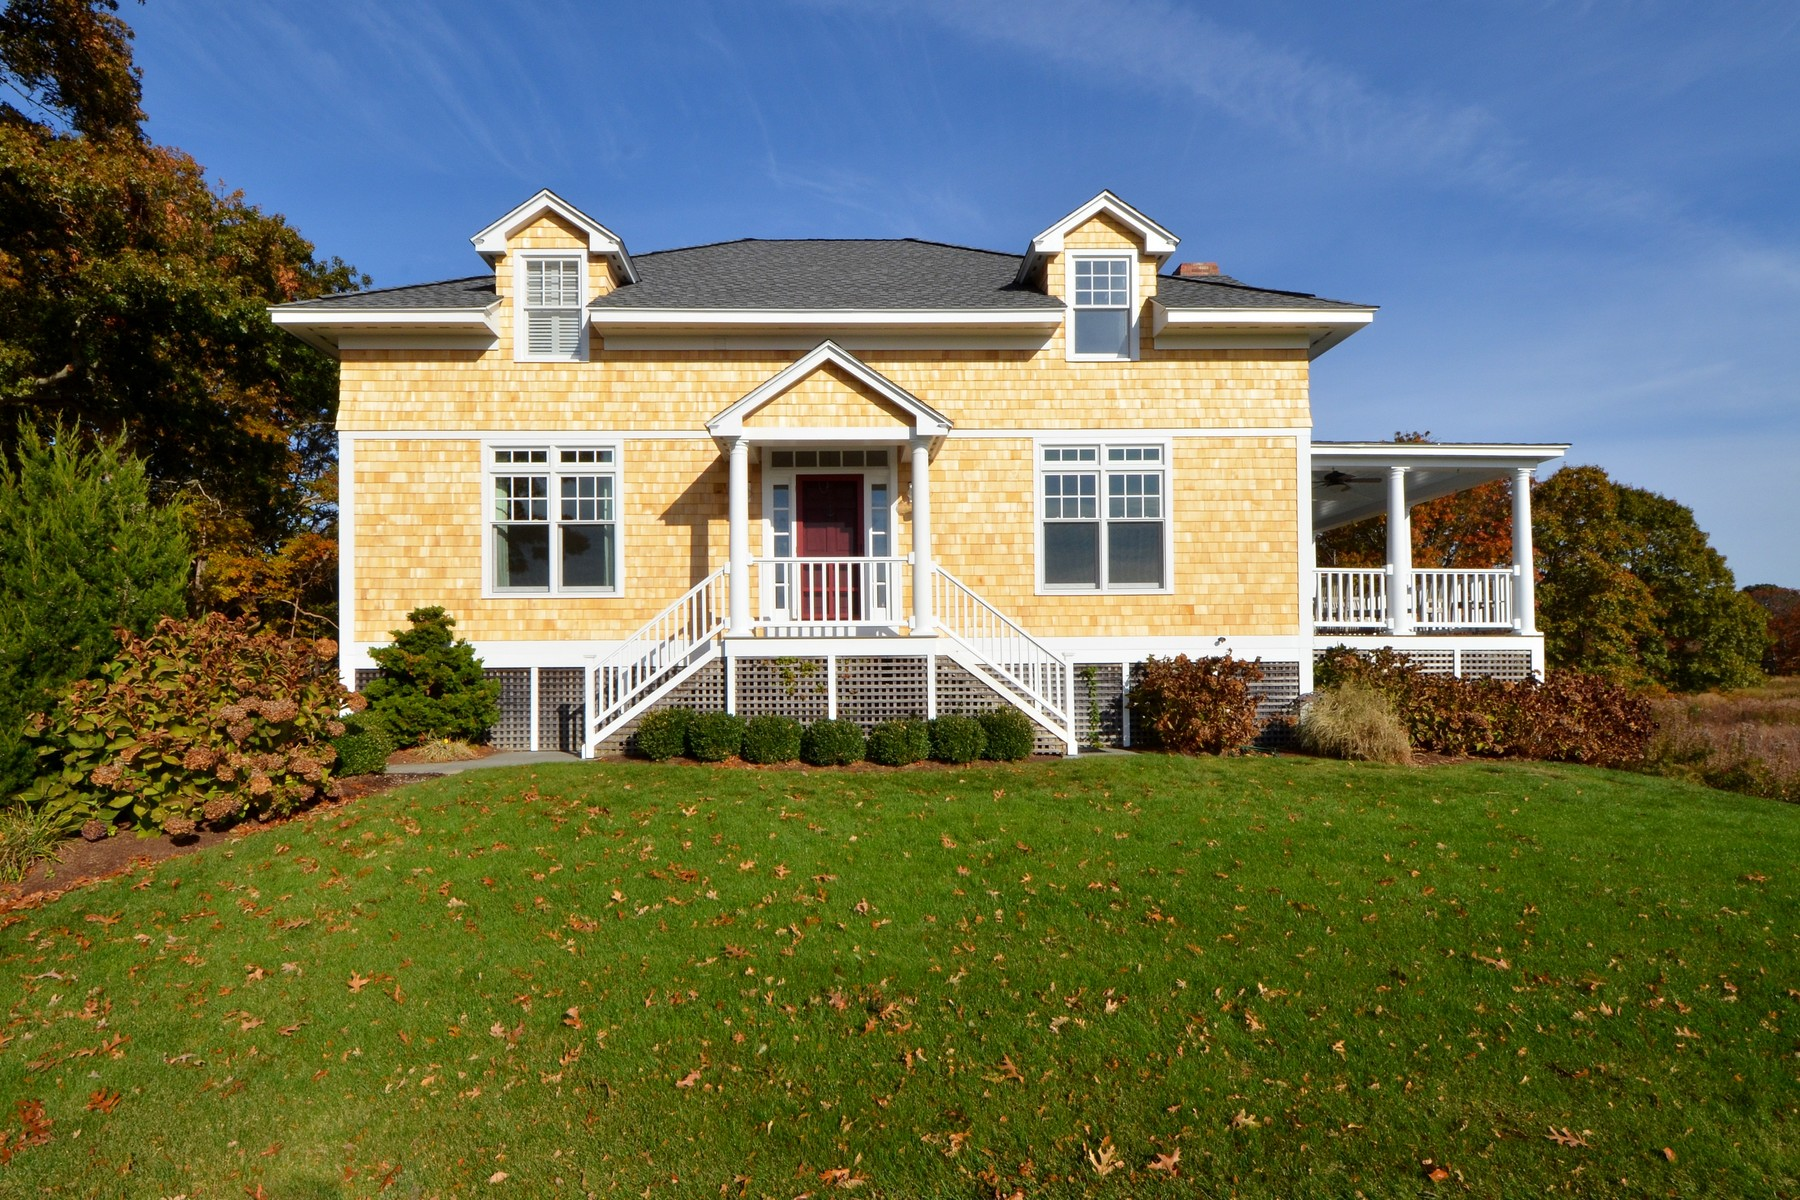 Casa Unifamiliar por un Venta en Sun-Filled Cape Style Home in Fenwick 3 Wilson Ave Old Saybrook, Connecticut 06475 Estados Unidos